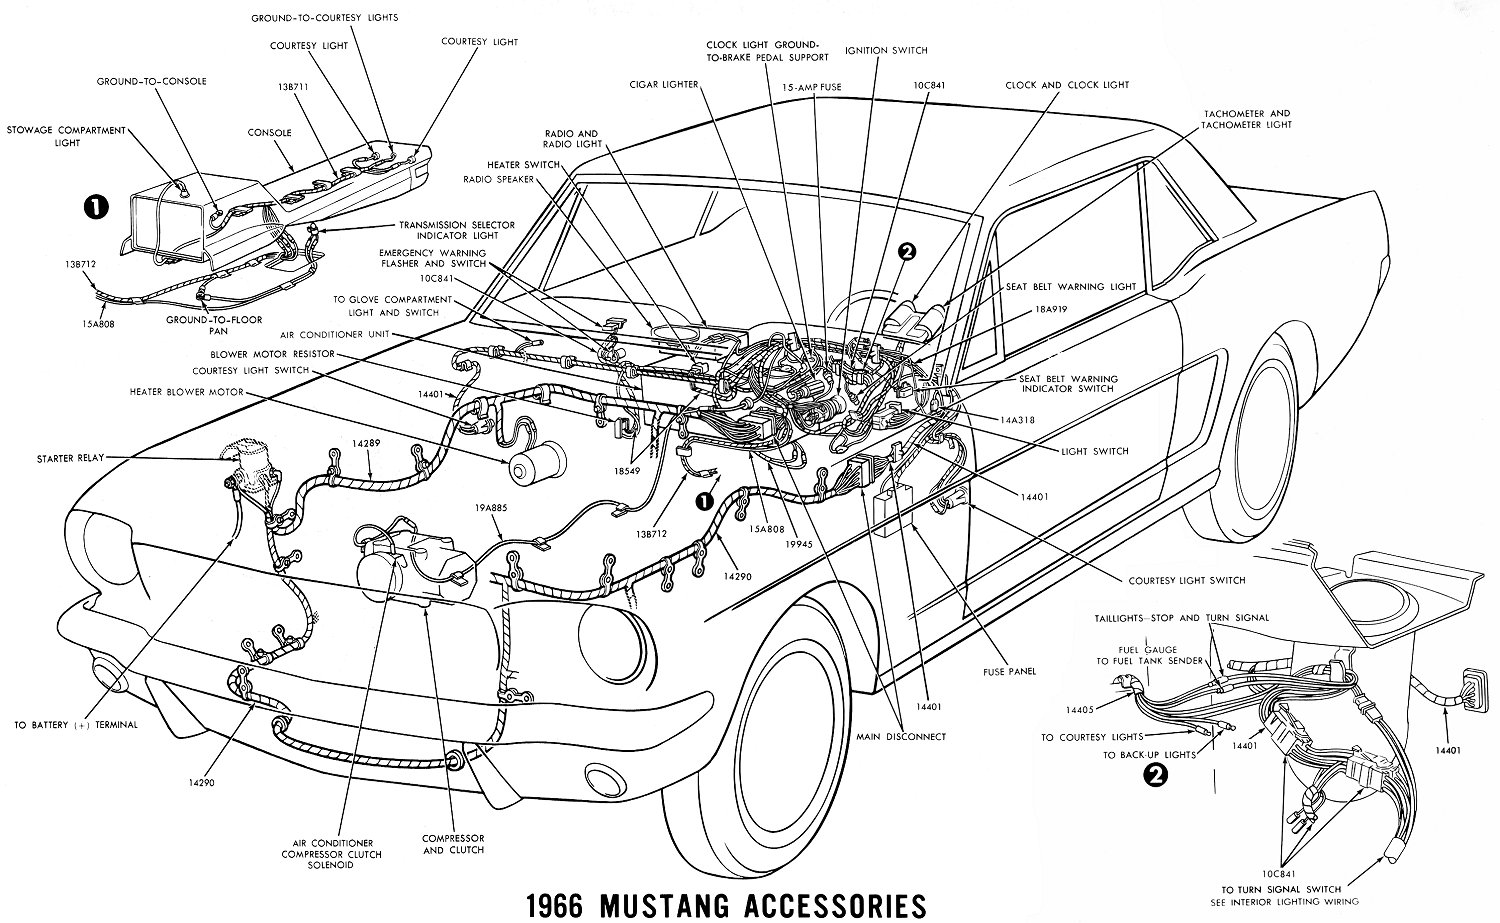 66acces 1966 mustang wiring diagrams average joe restoration 1969 mustang instrument cluster wiring diagram at n-0.co